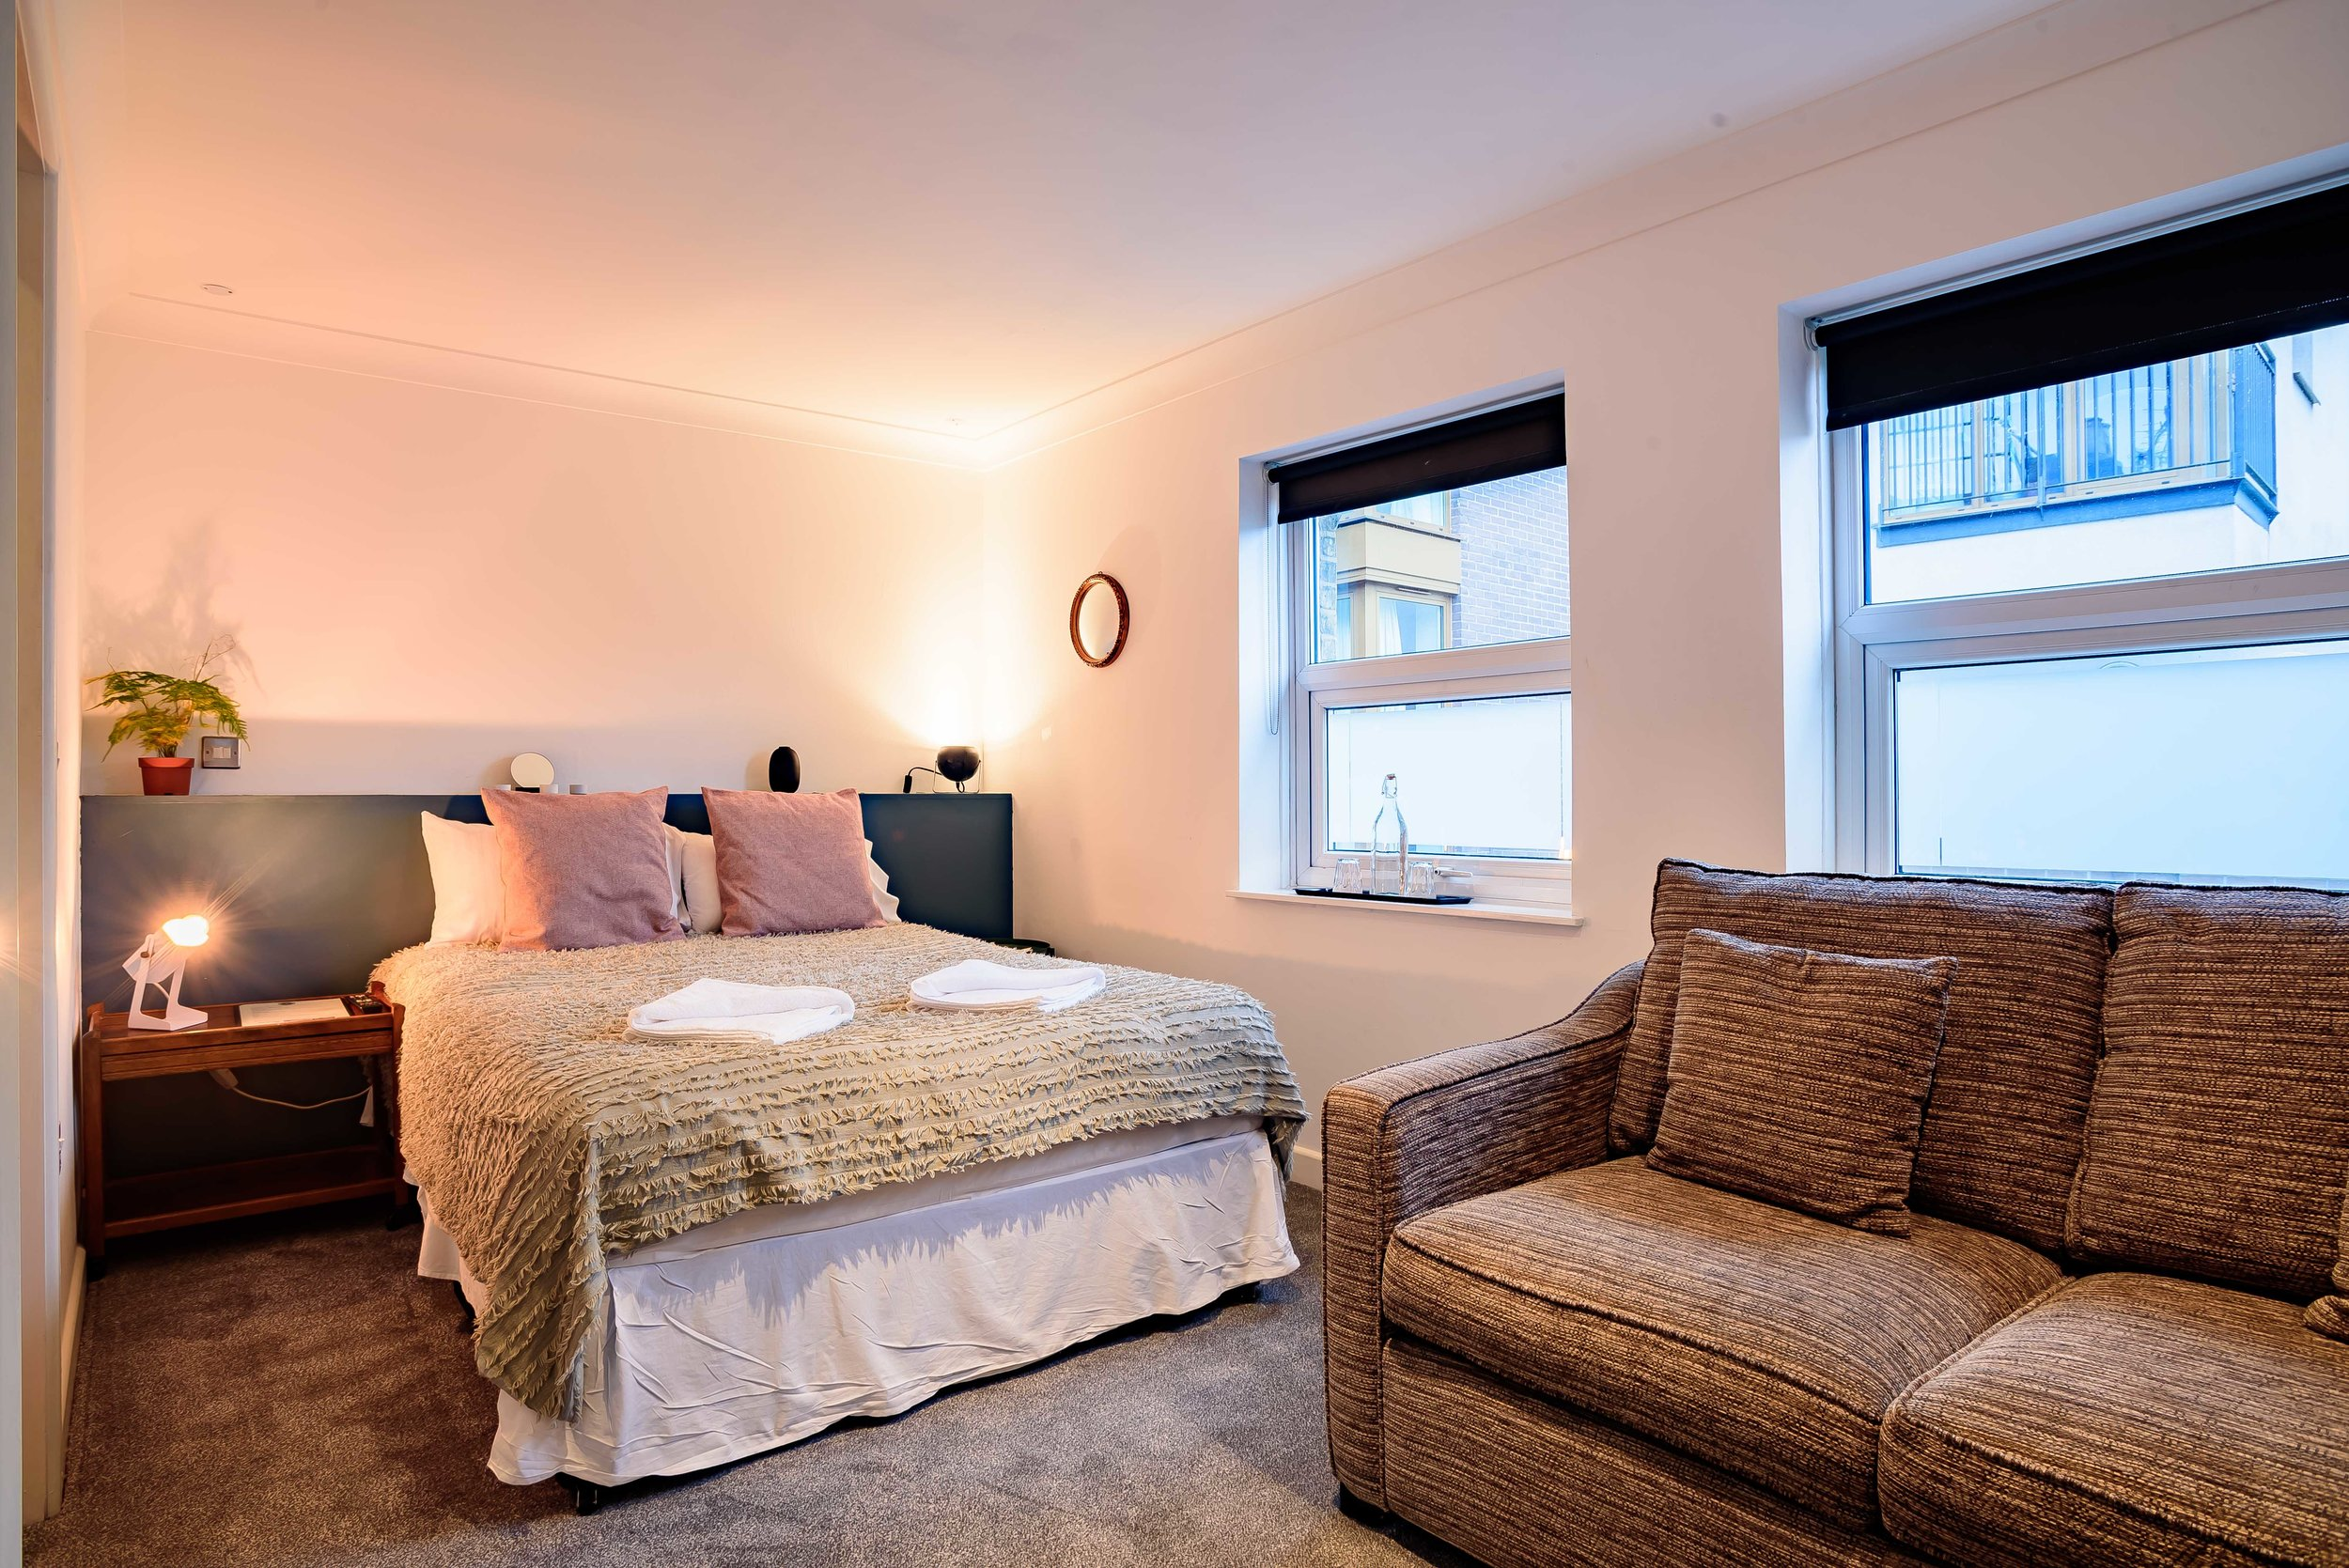 Old Ship Hackney offers hotel rooms and private hire packages